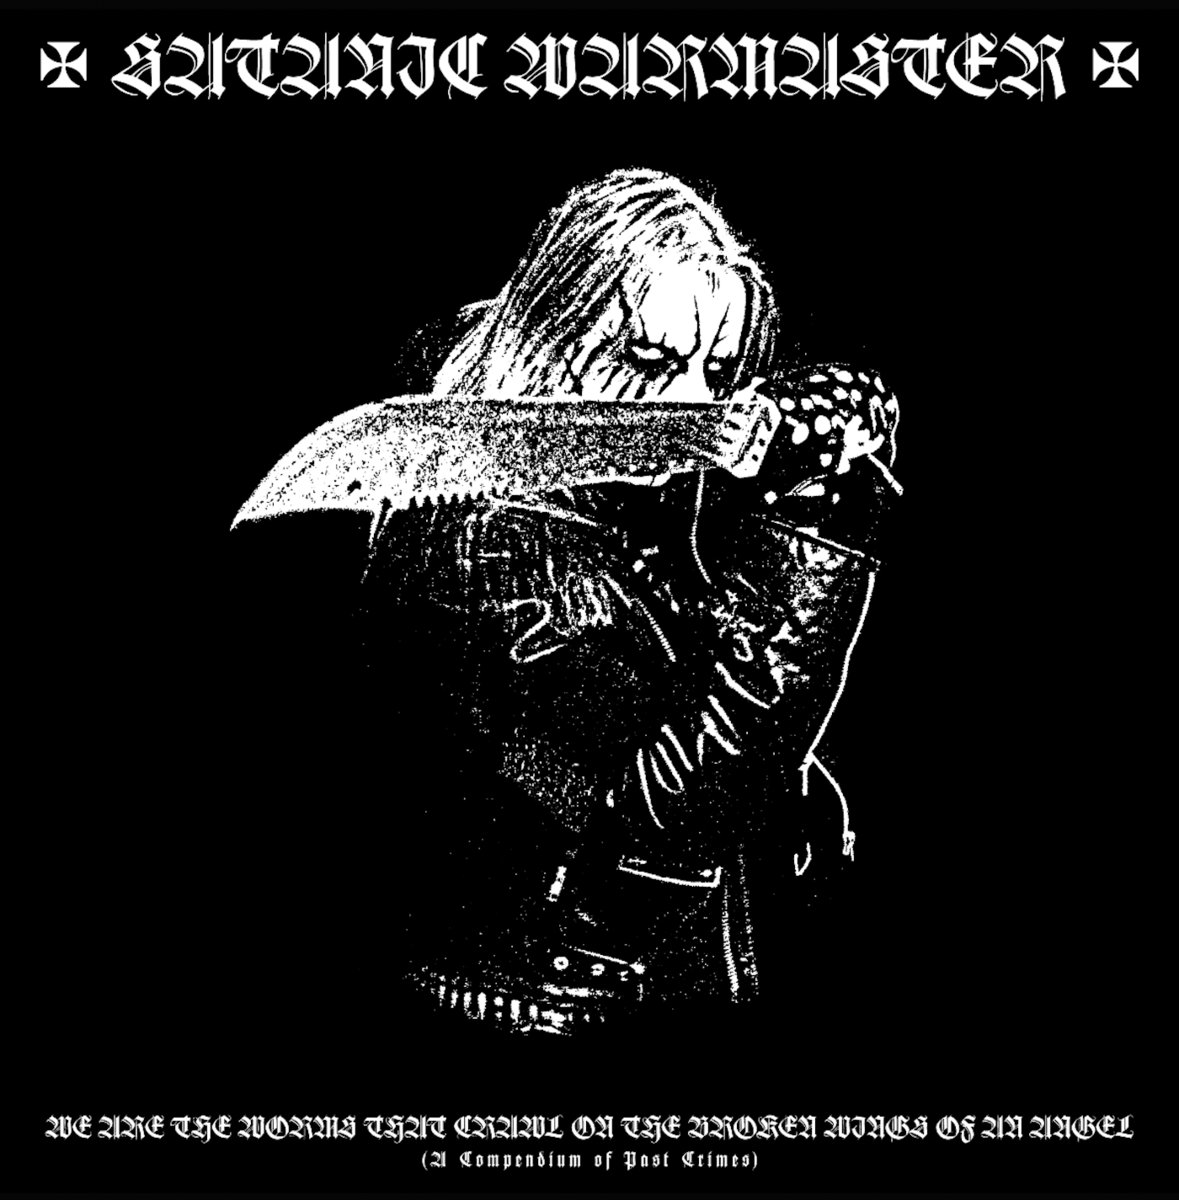 SATANIC WARMASTER - We Are The Worms That Crawl on the Broken Wings of an Angel